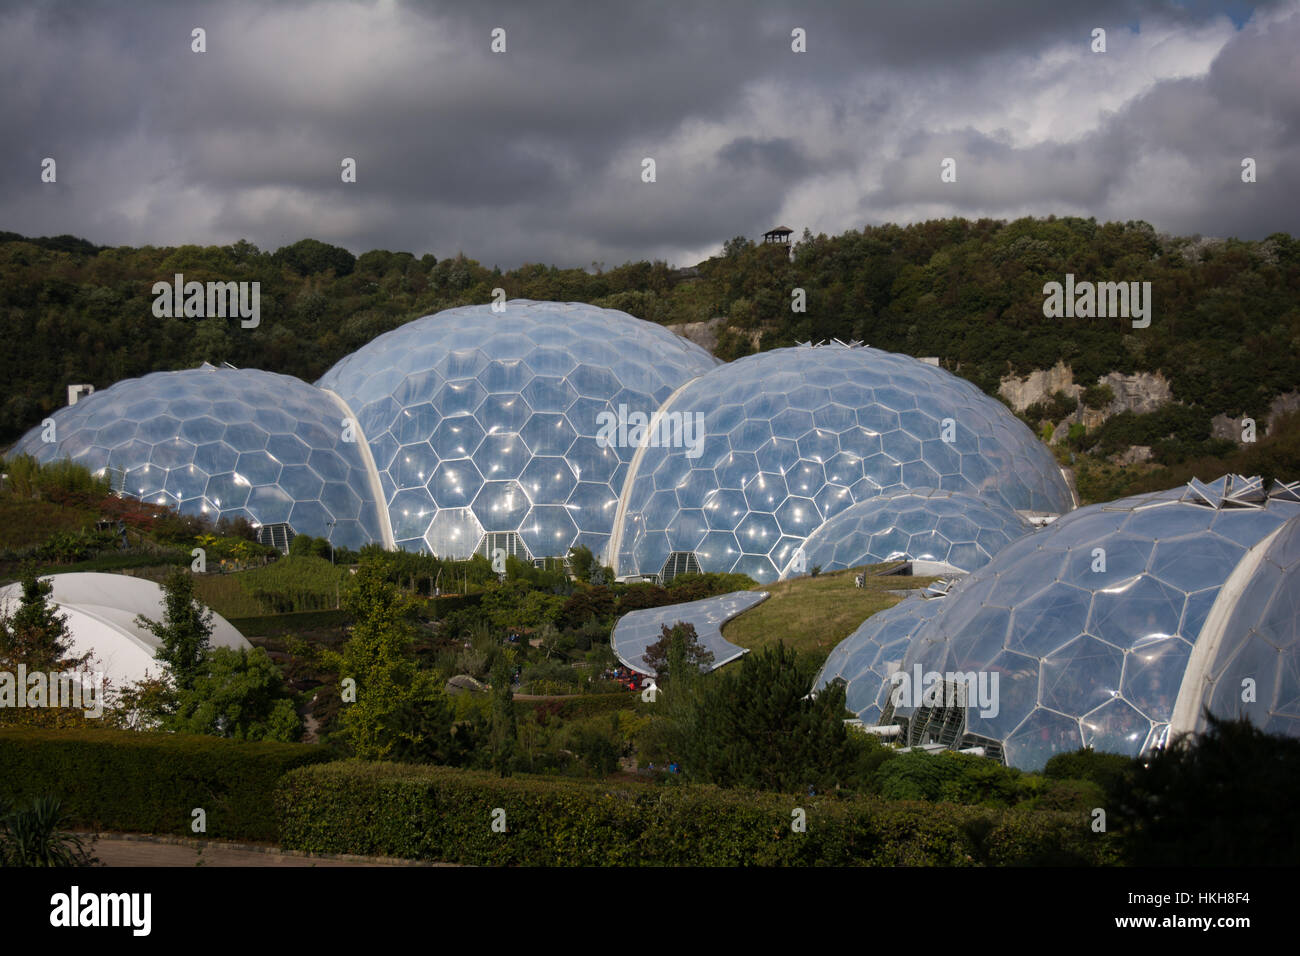 The Eden project, Cornwall, UK Stock Photo